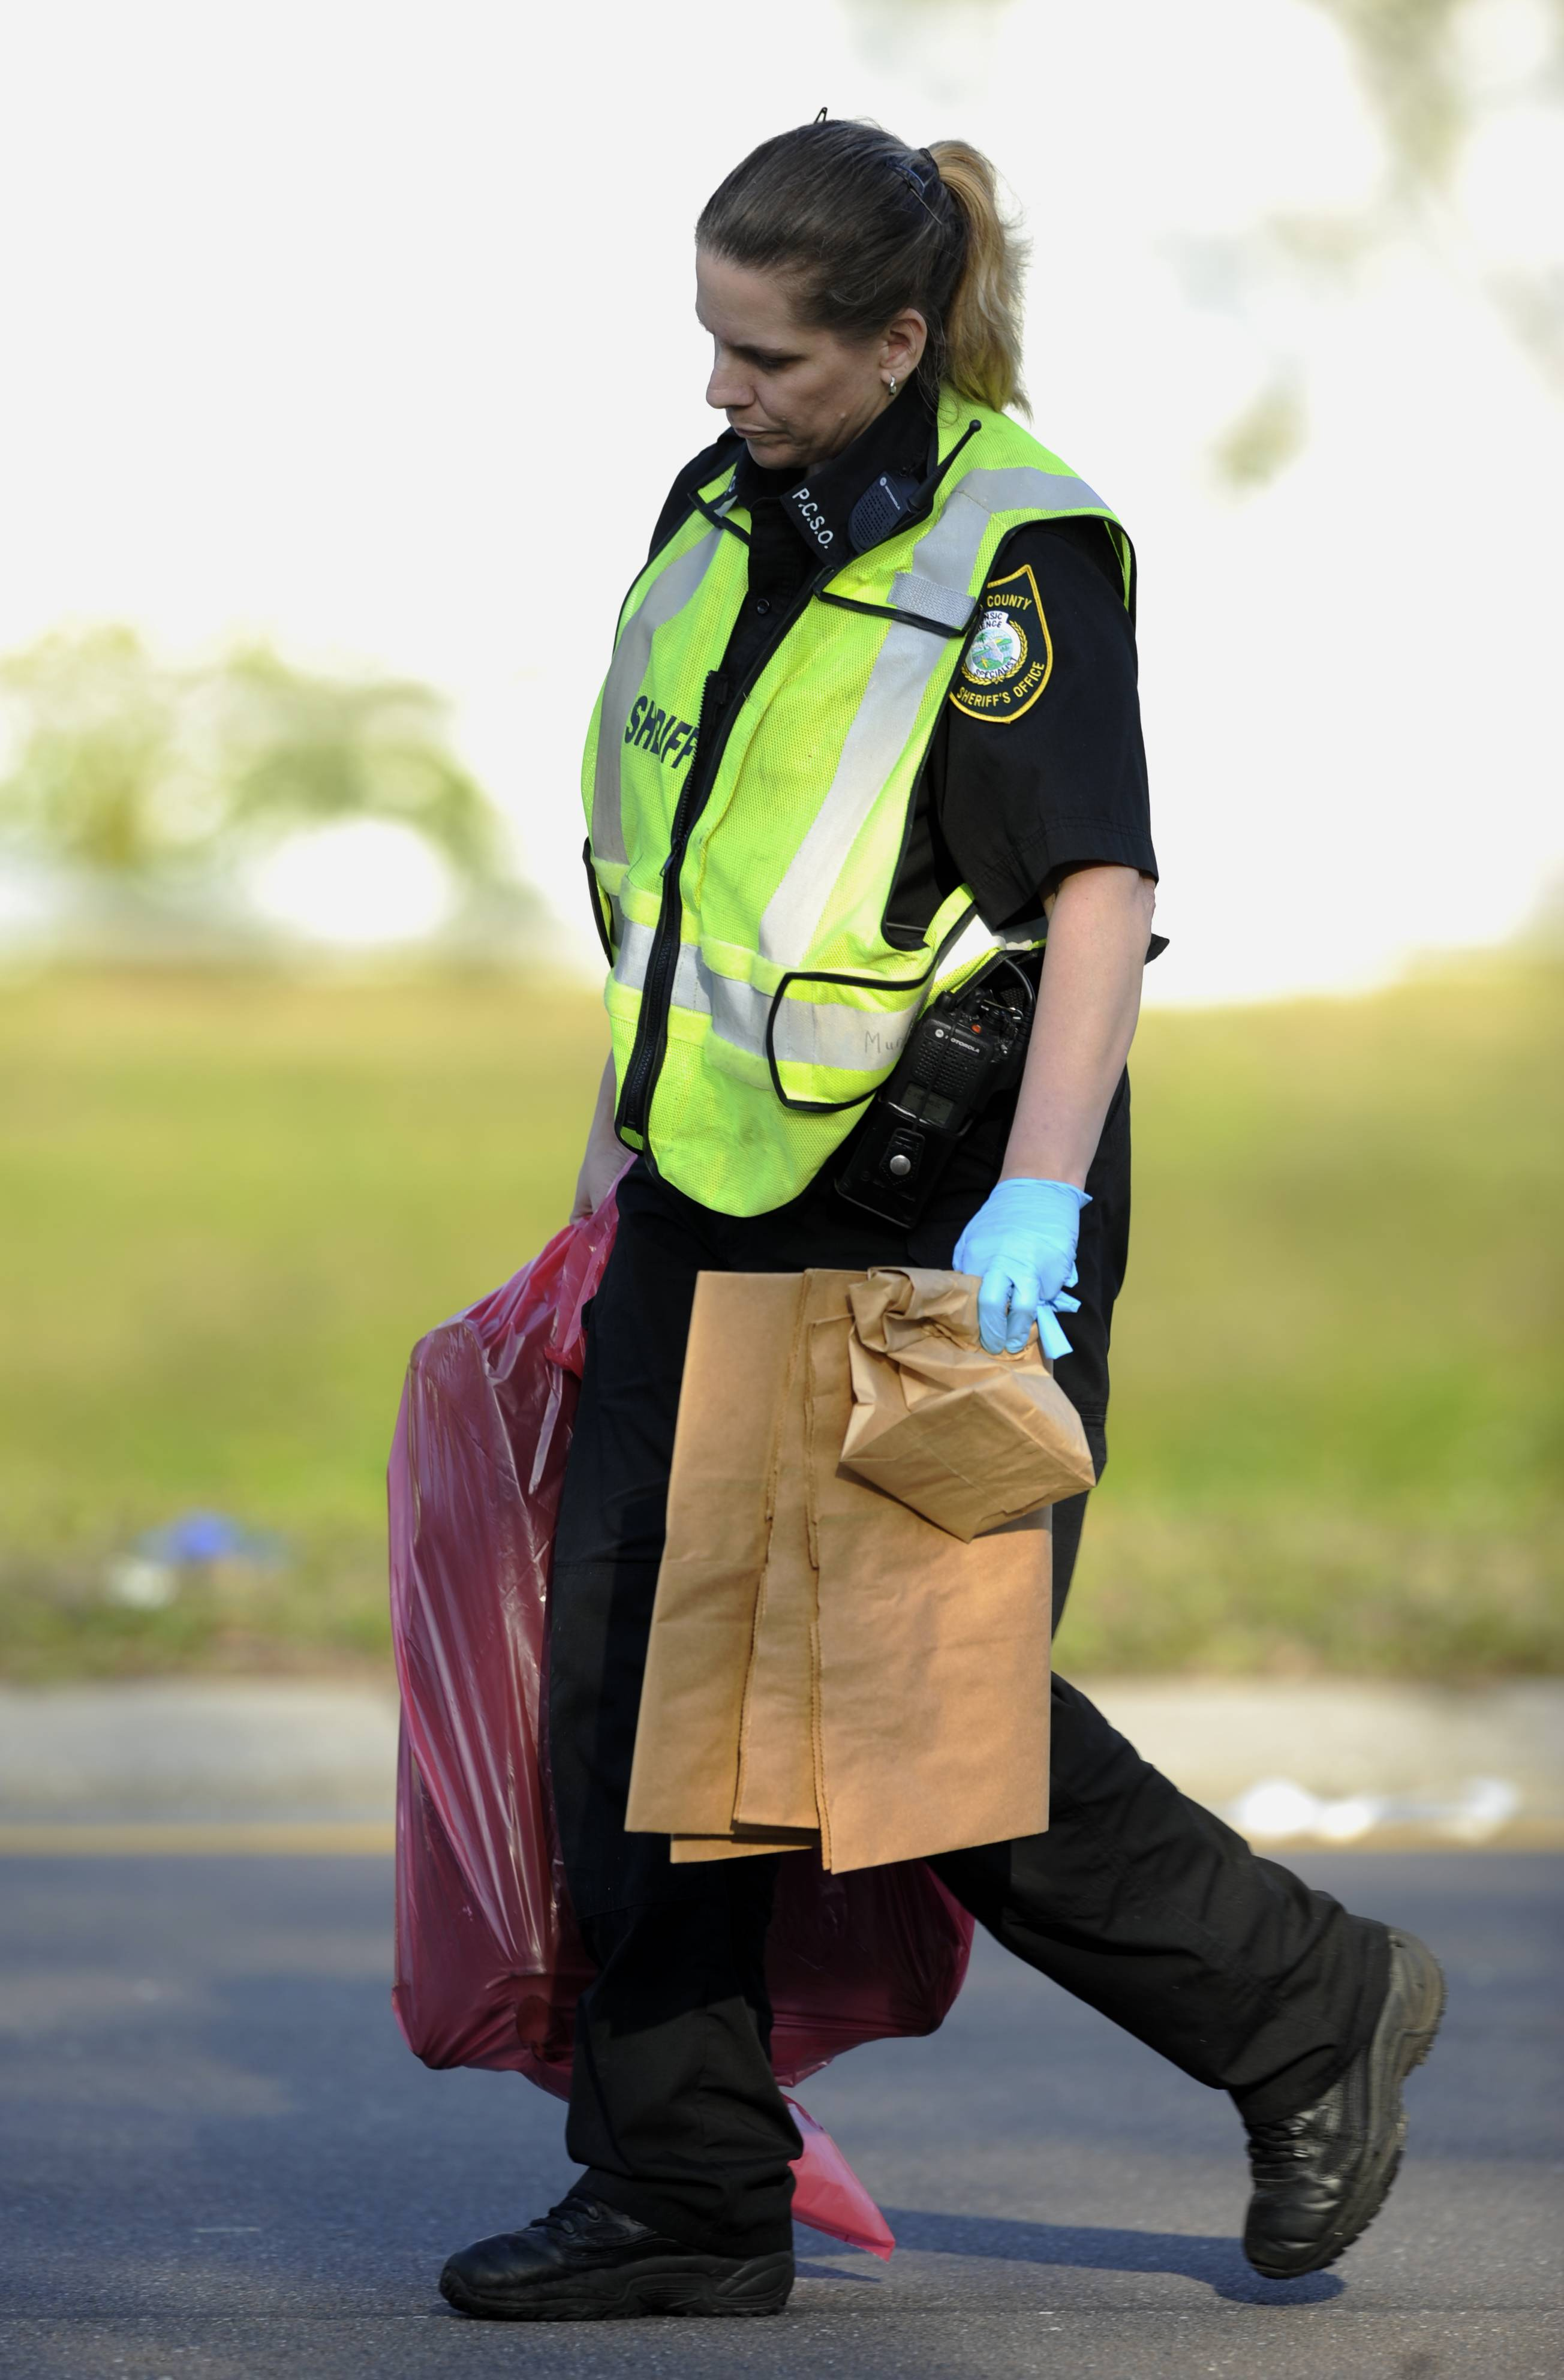 A crime scene technician with Pinellas County Sheriff's Office carries items from the scene of a small passenger plane which crashed early Saturday near Clearwater, Fla.